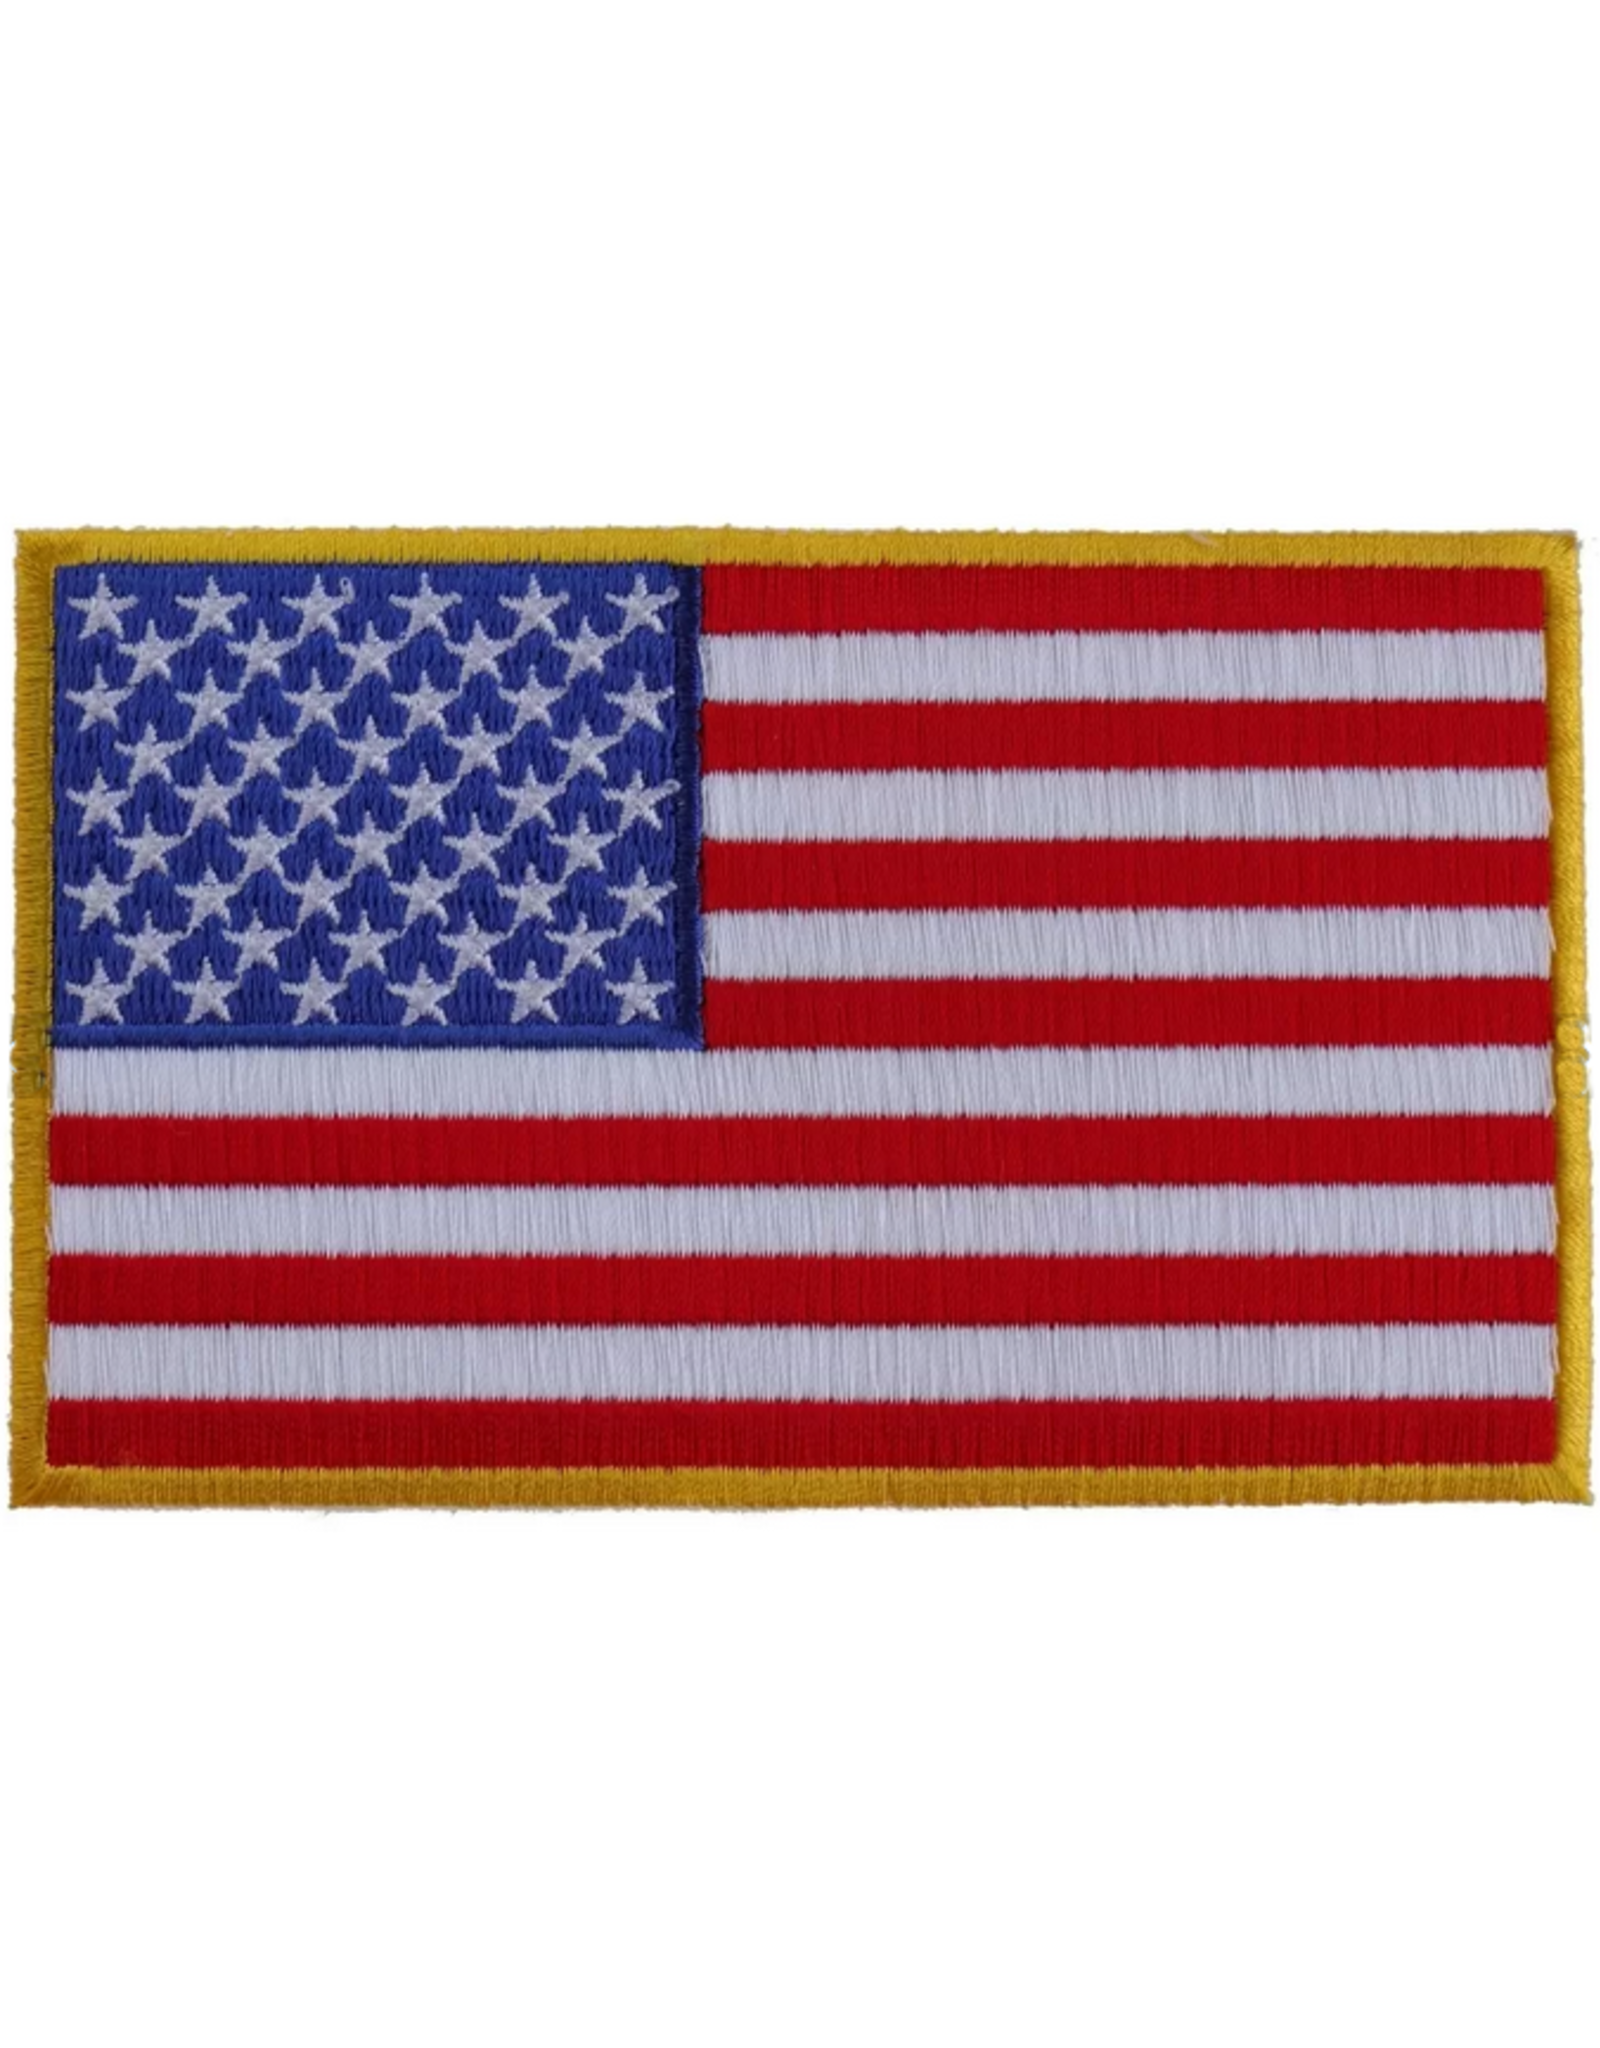 Embroidered American Flag Patch 5 X 3 Midtown Military